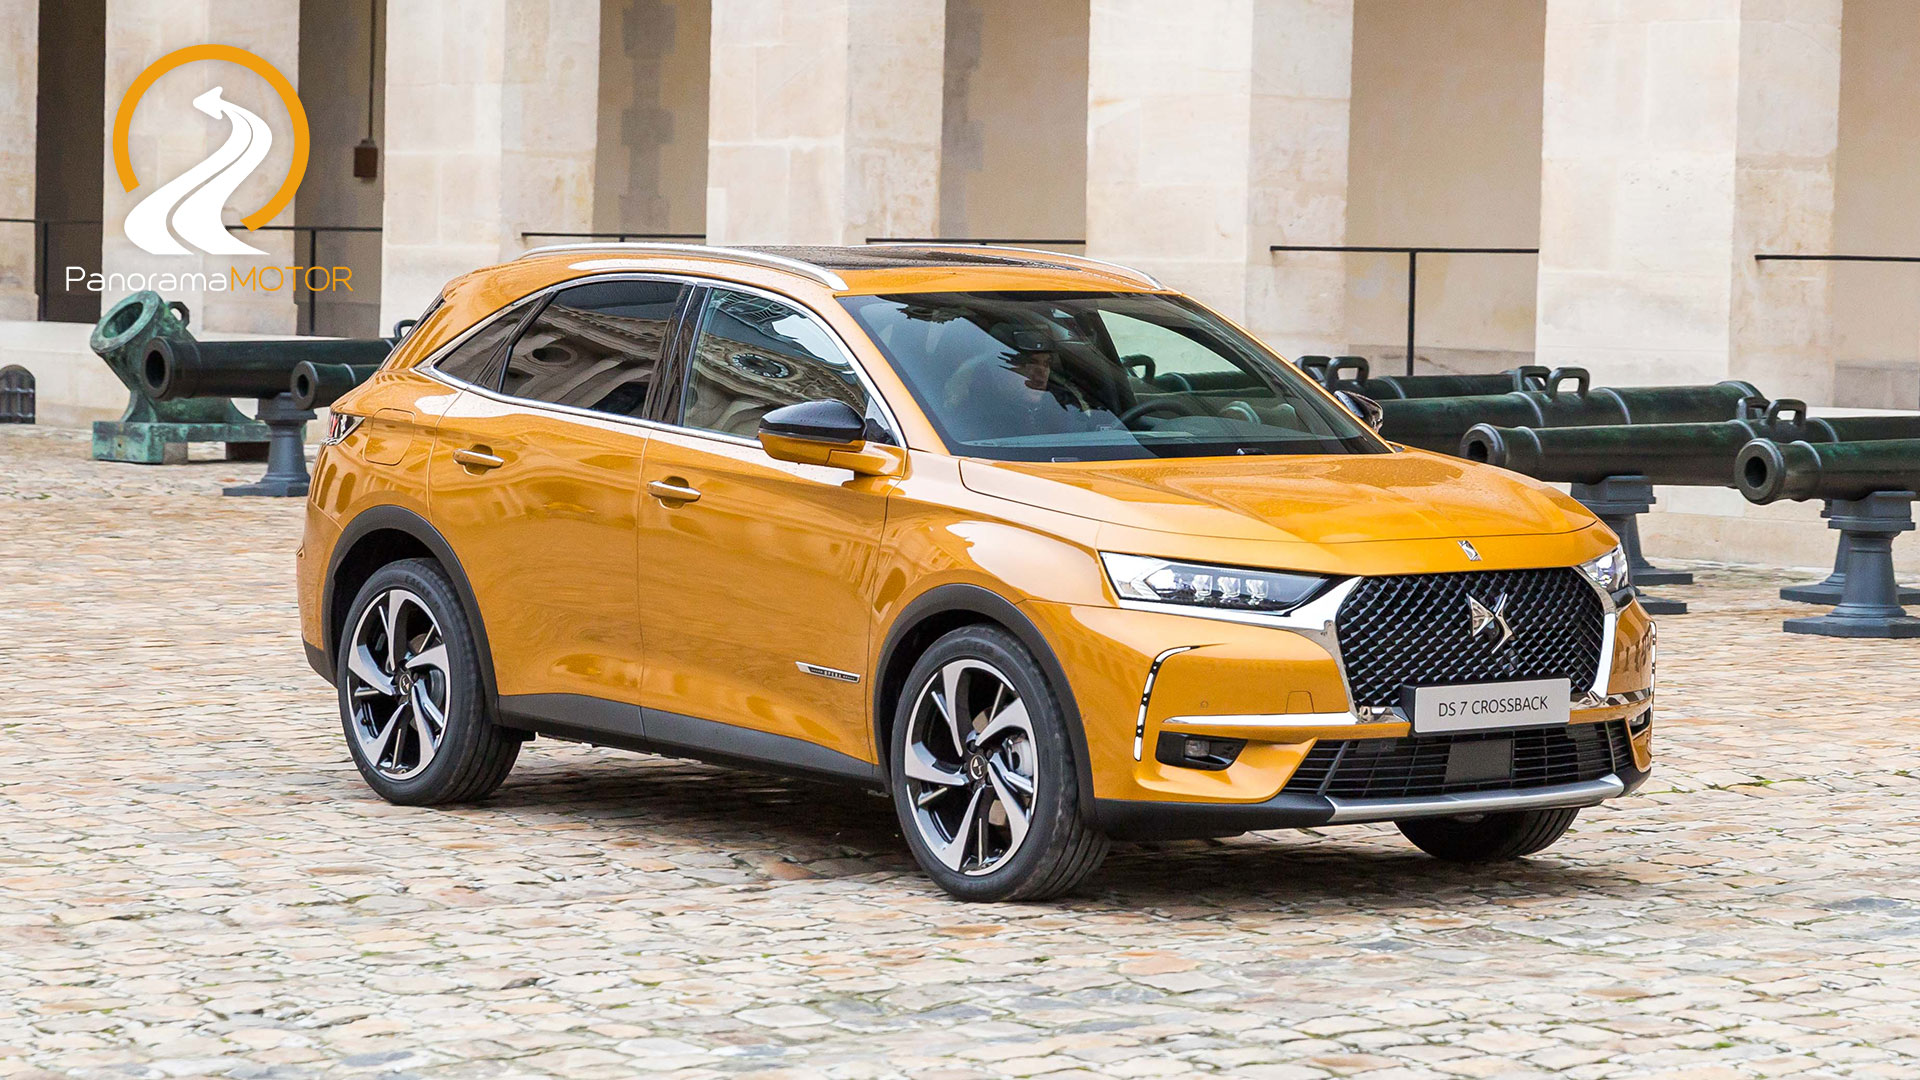 DS7 Crossback 2018